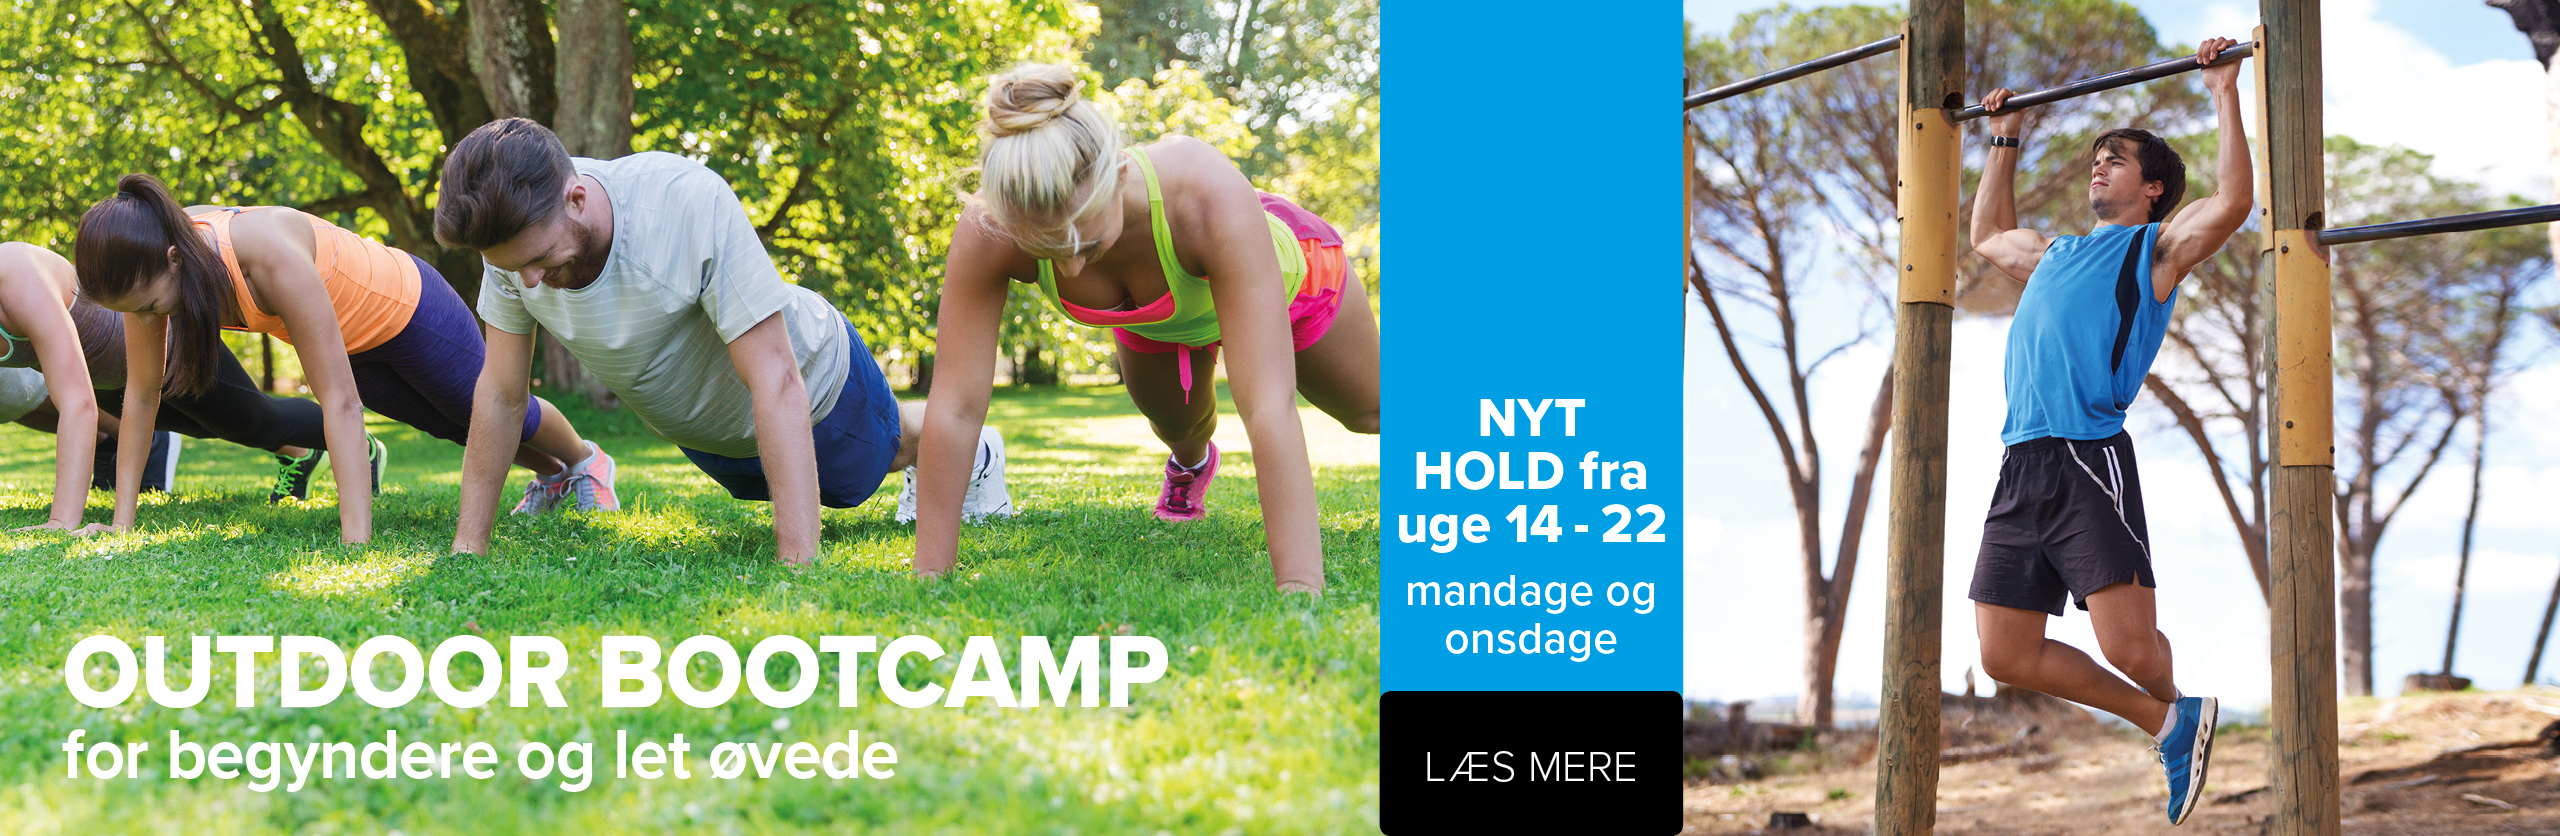 Outdoor bootcamp – NYT HOLD